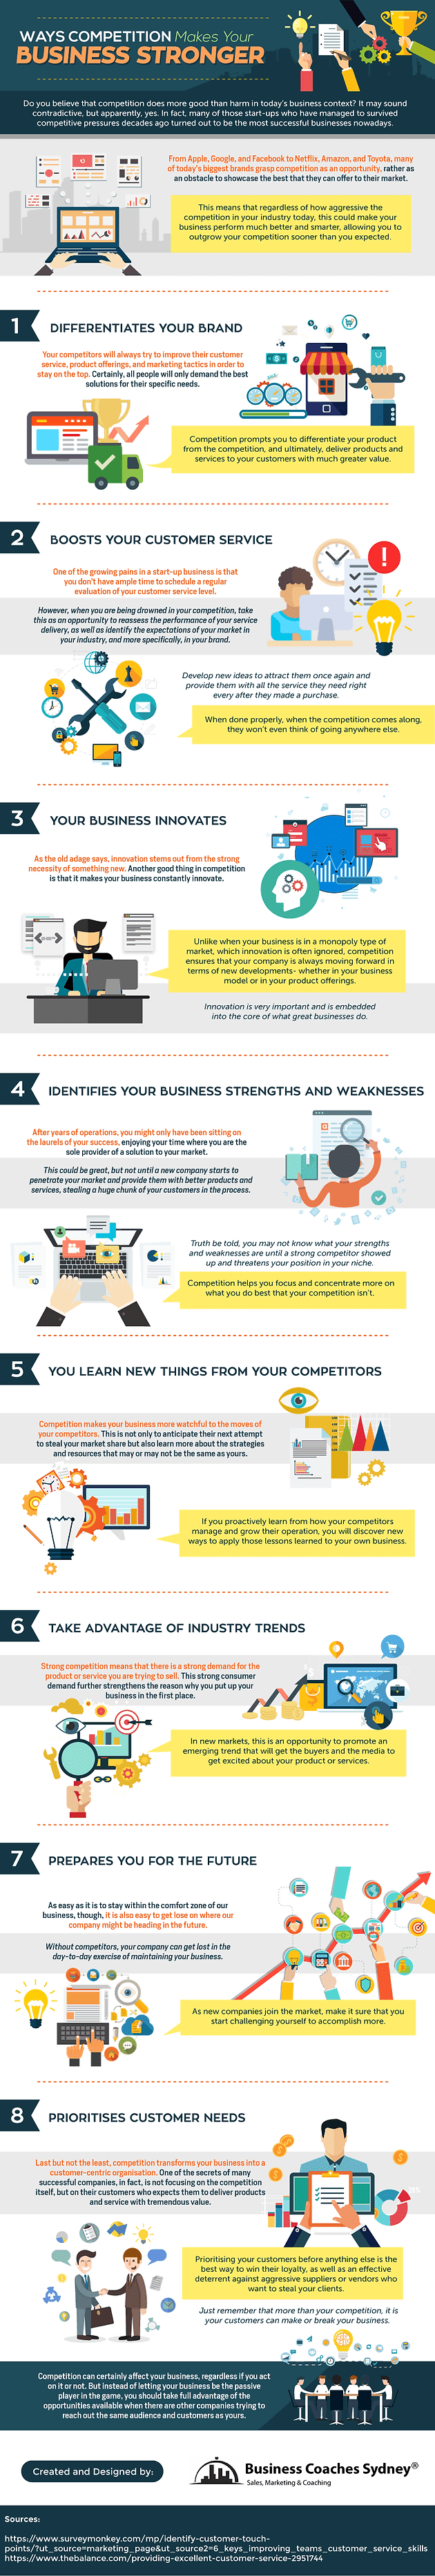 Ways Competition Makes Your Business Stronger